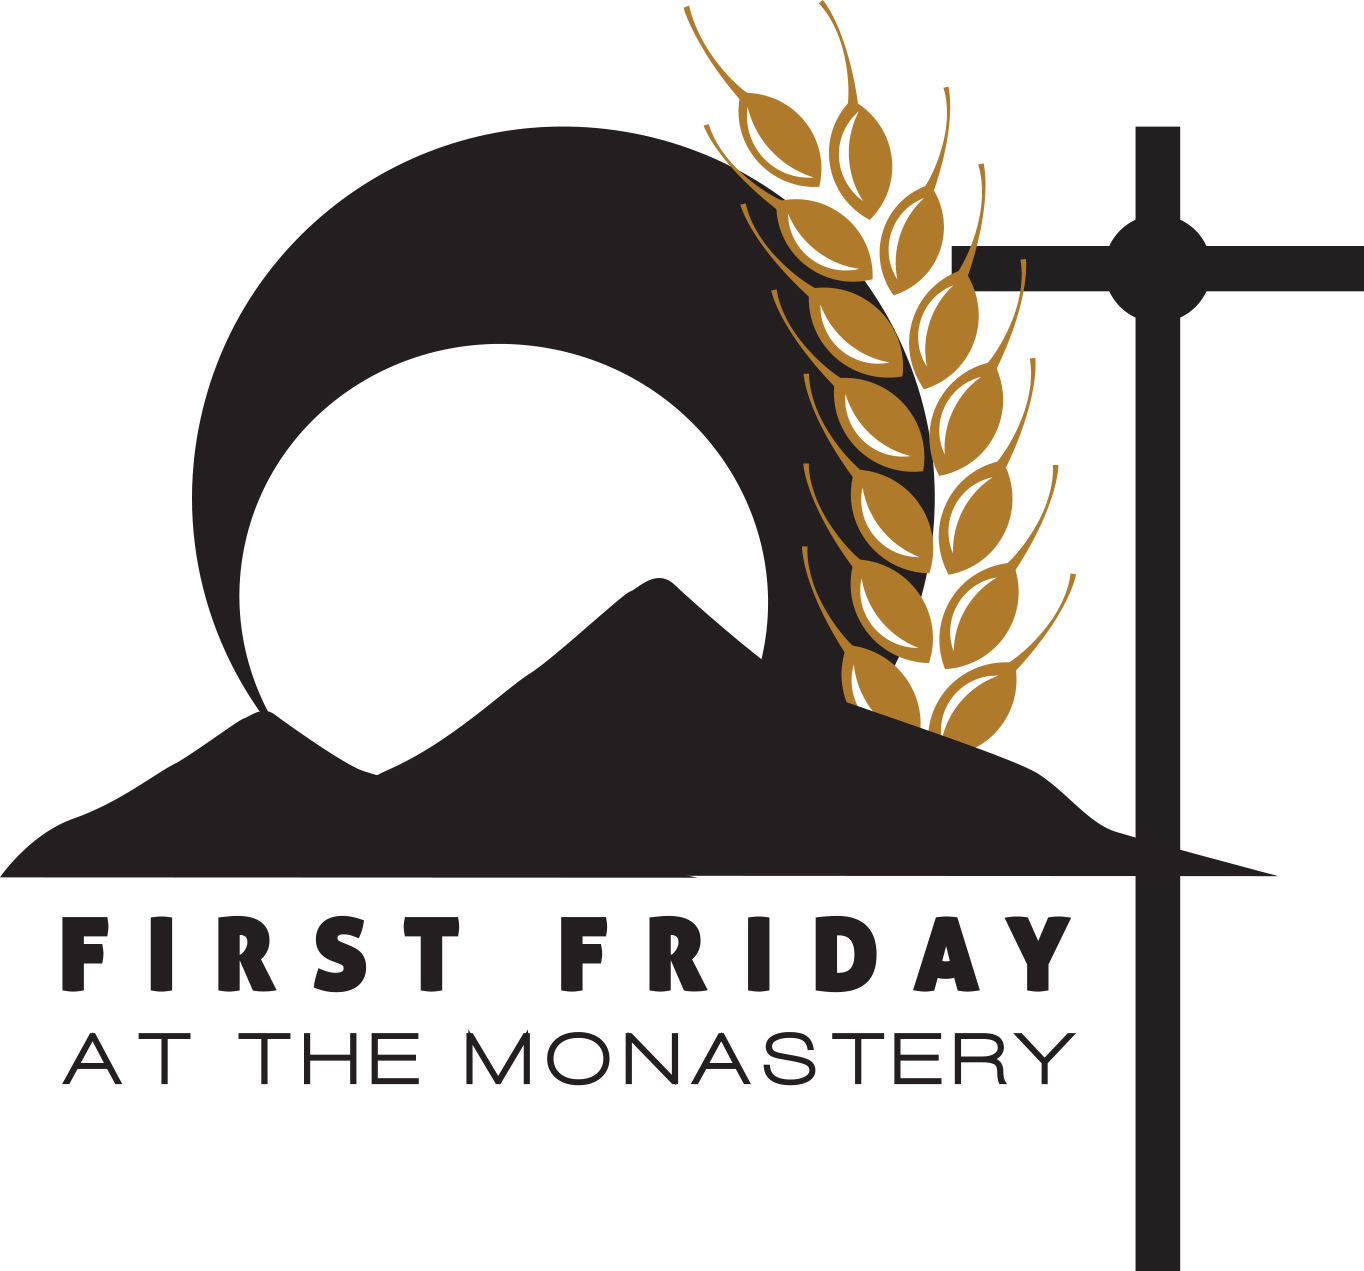 First Friday at the Monastery - SEPT